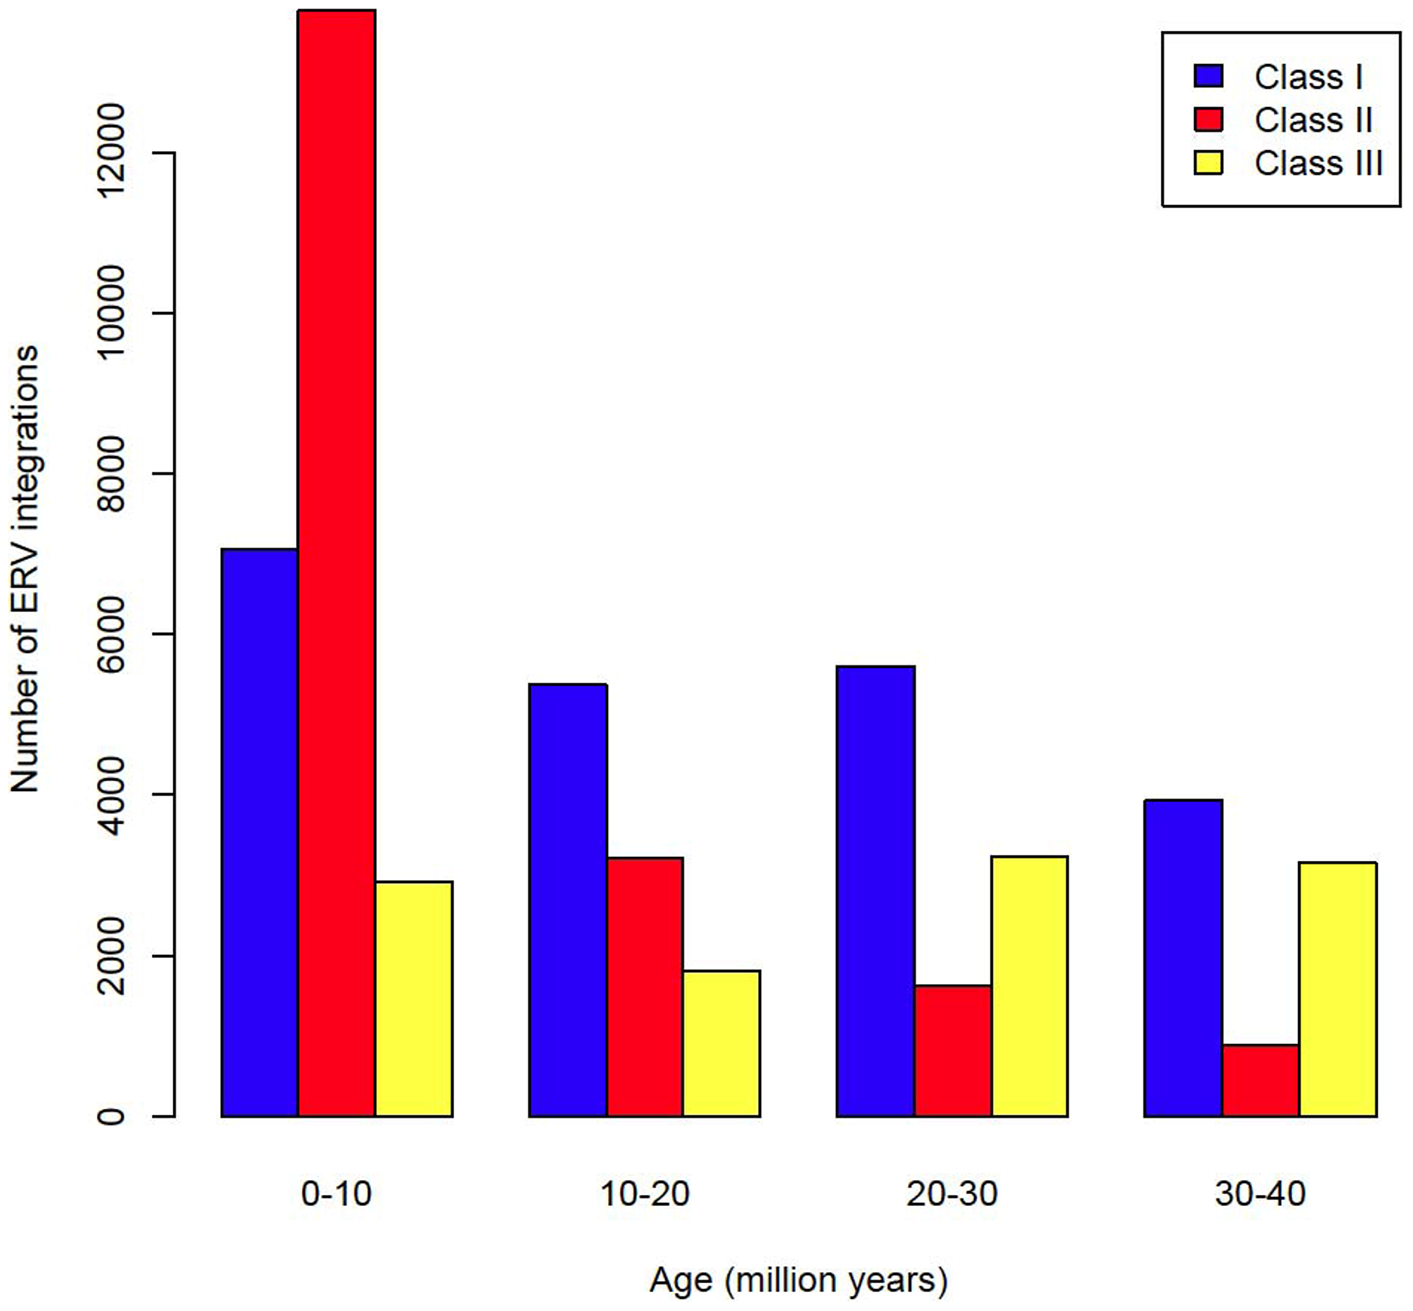 Age distribution of ERVs by class.